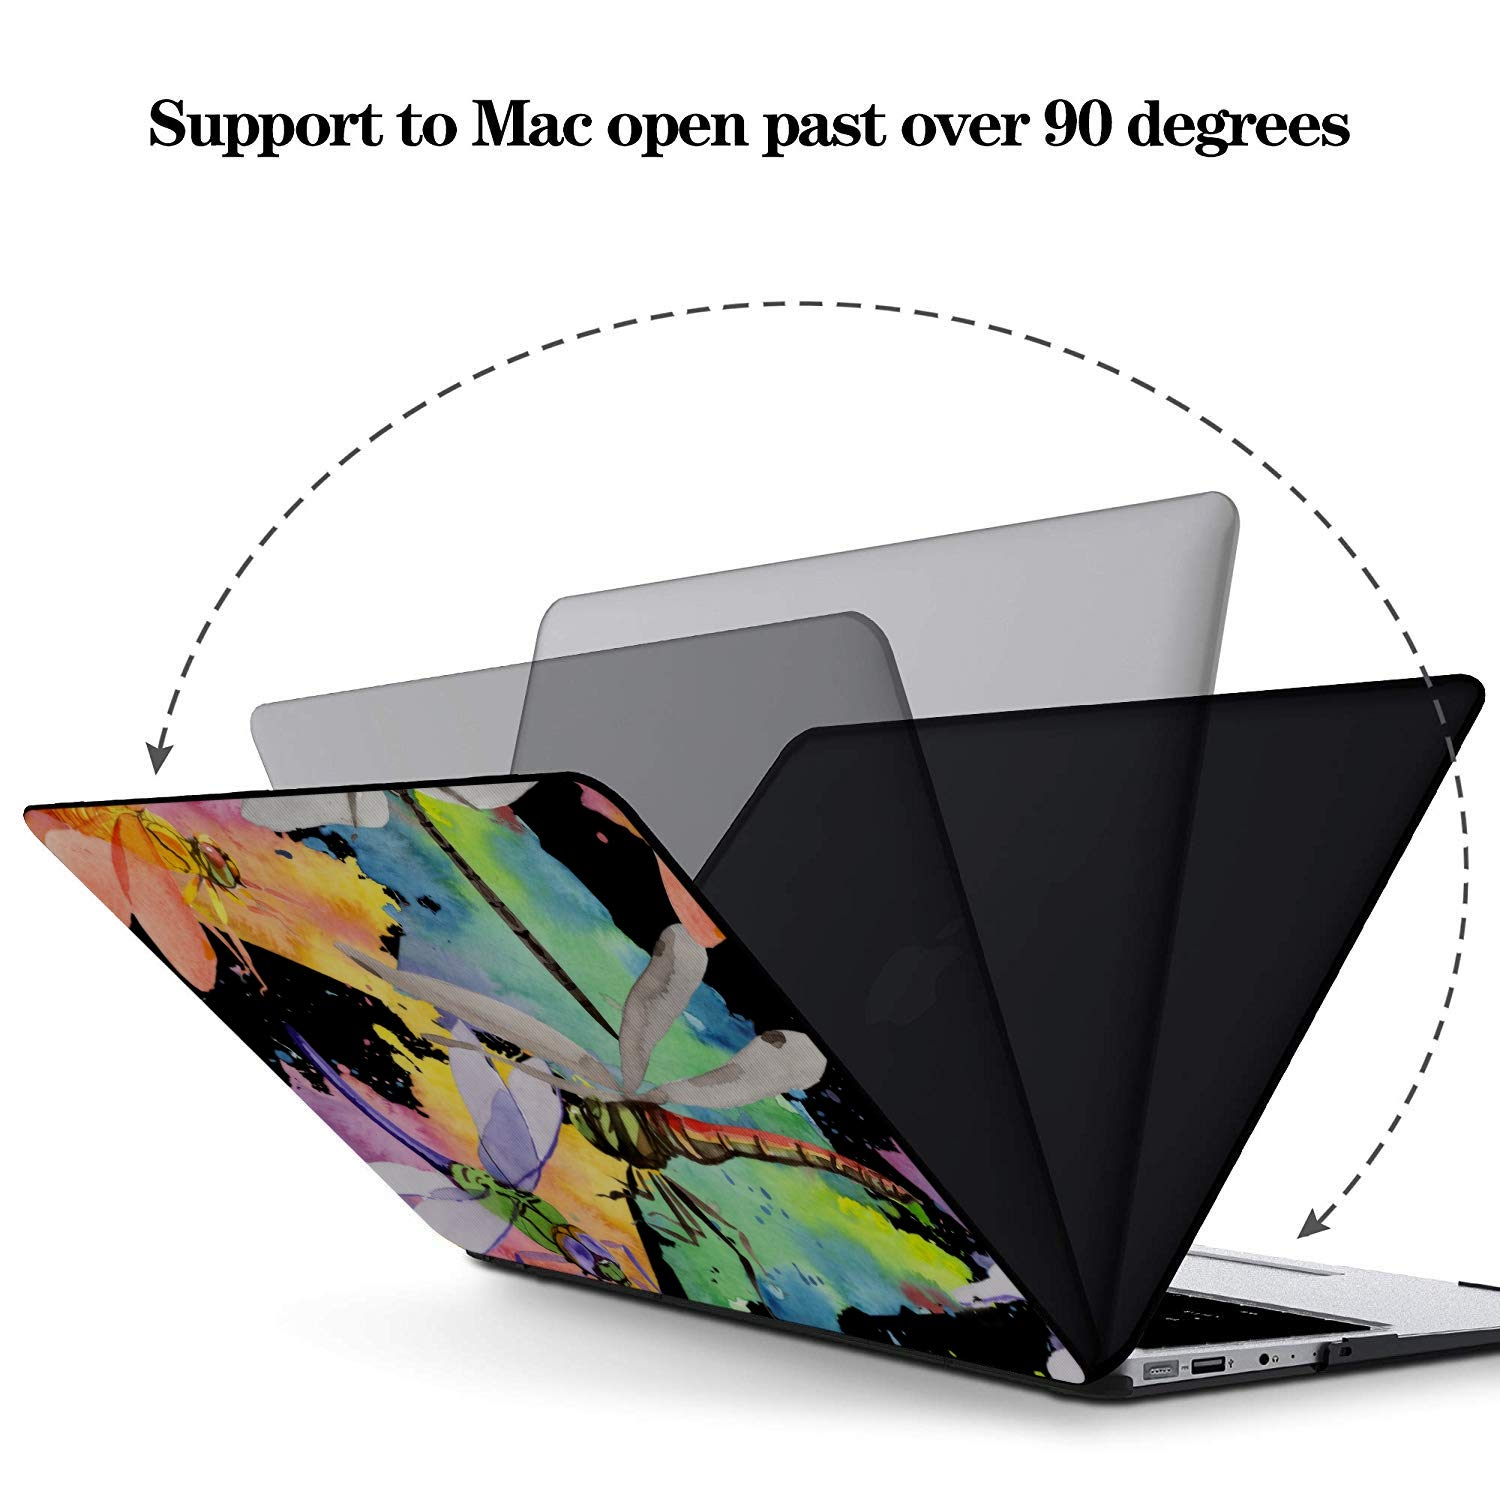 Air Case Summer Reptile Cartoon Mosquito Insect Plastic Hard Shell Compatible Mac Air 11 Pro 13 15 Mac Book Accessories Protection for MacBook 2016-2019 Version